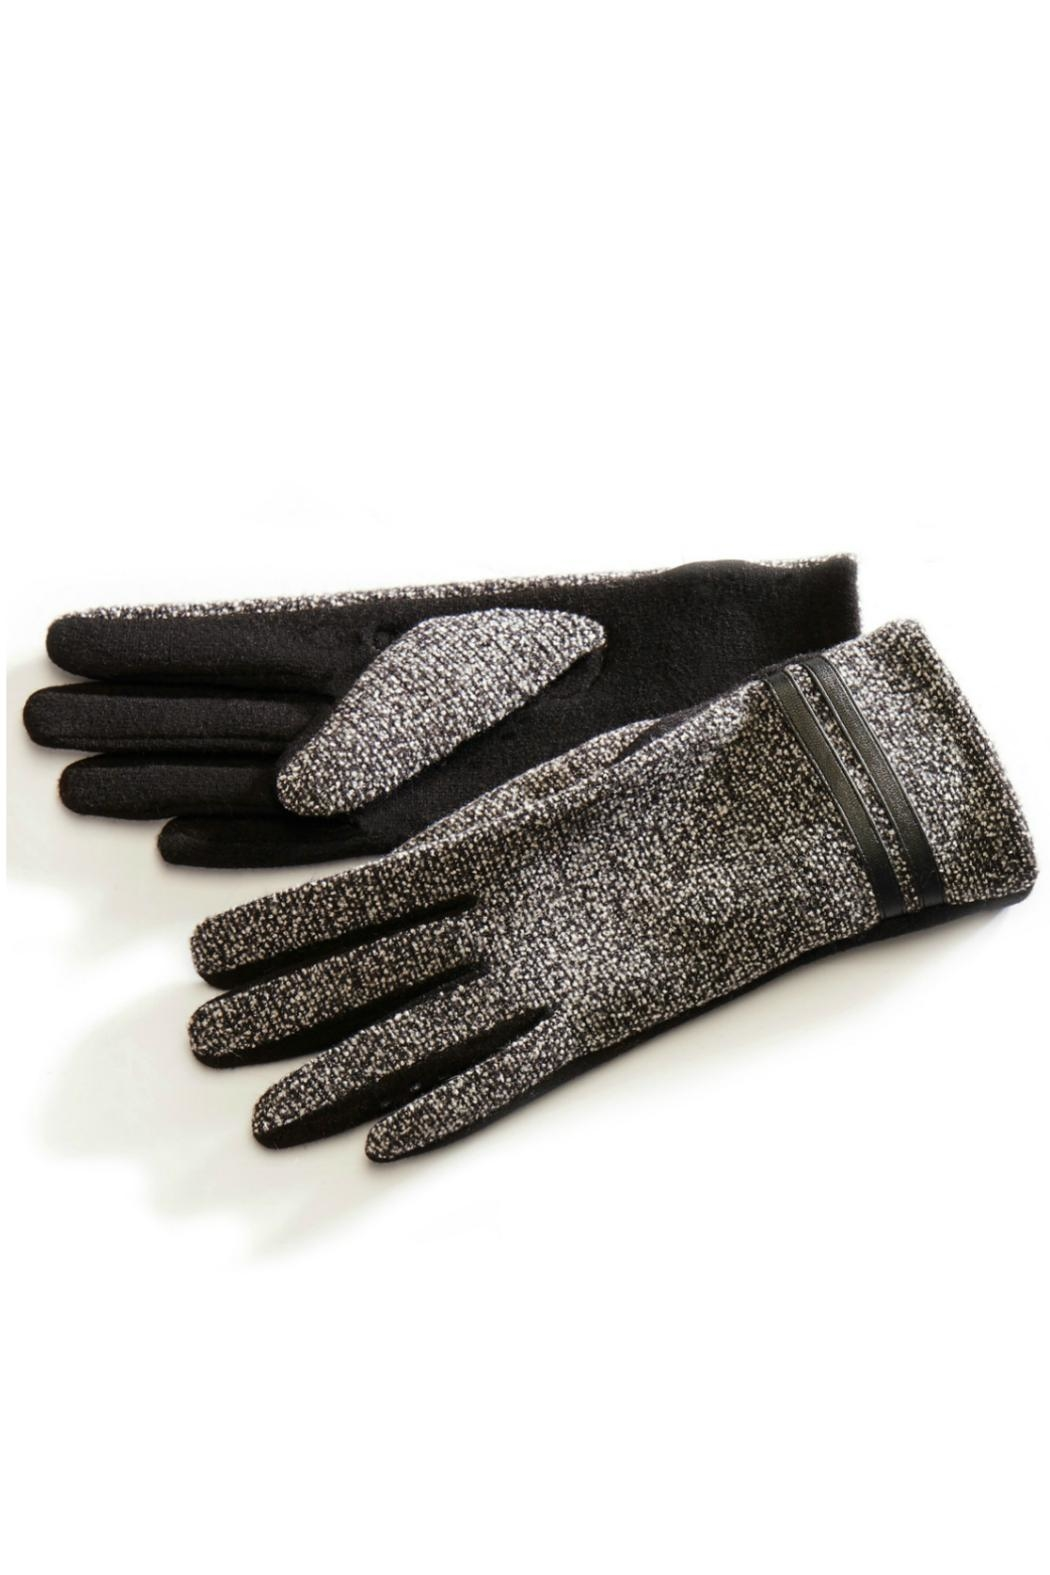 Charlie Paige Tweed Winter Gloves - Main Image